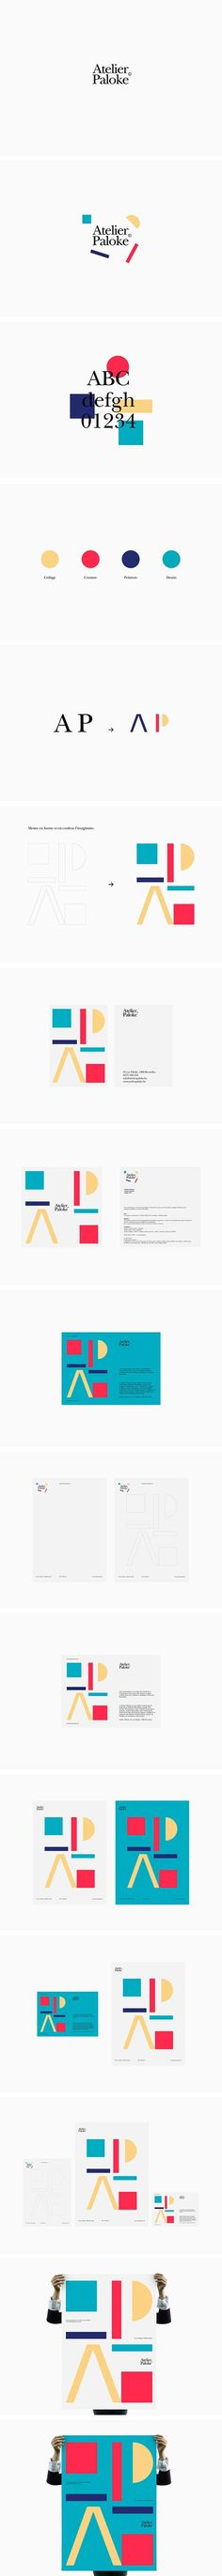 Atelier Paloke, playful geometry branding identity logo stationery business cards design